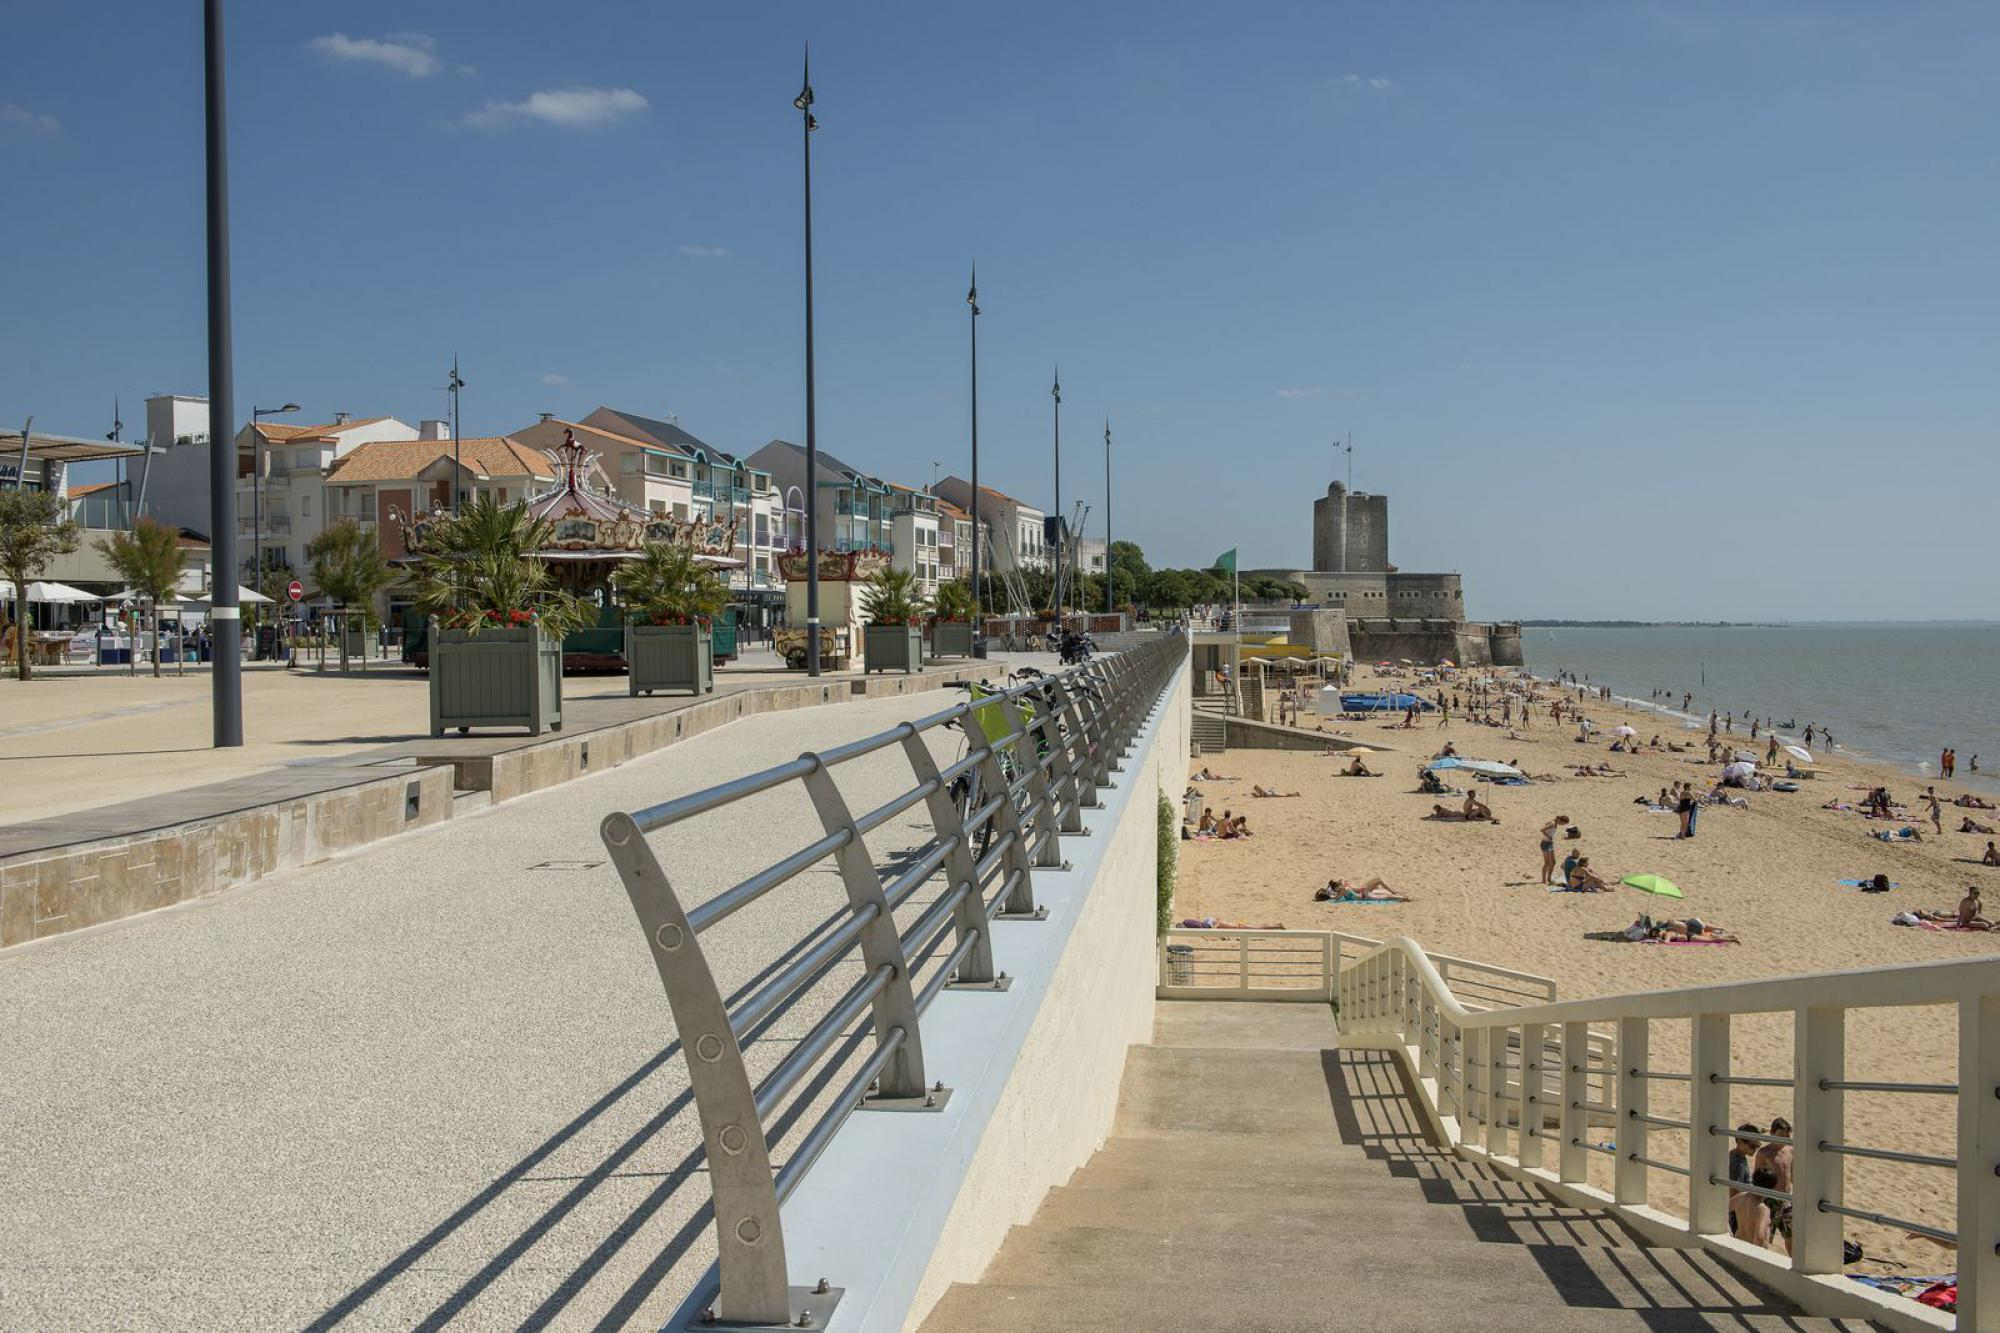 Liens de l 39 h tel rochefort h tel de france 2 toiles rochefort sur mer centre ville - Office tourisme fort de france ...